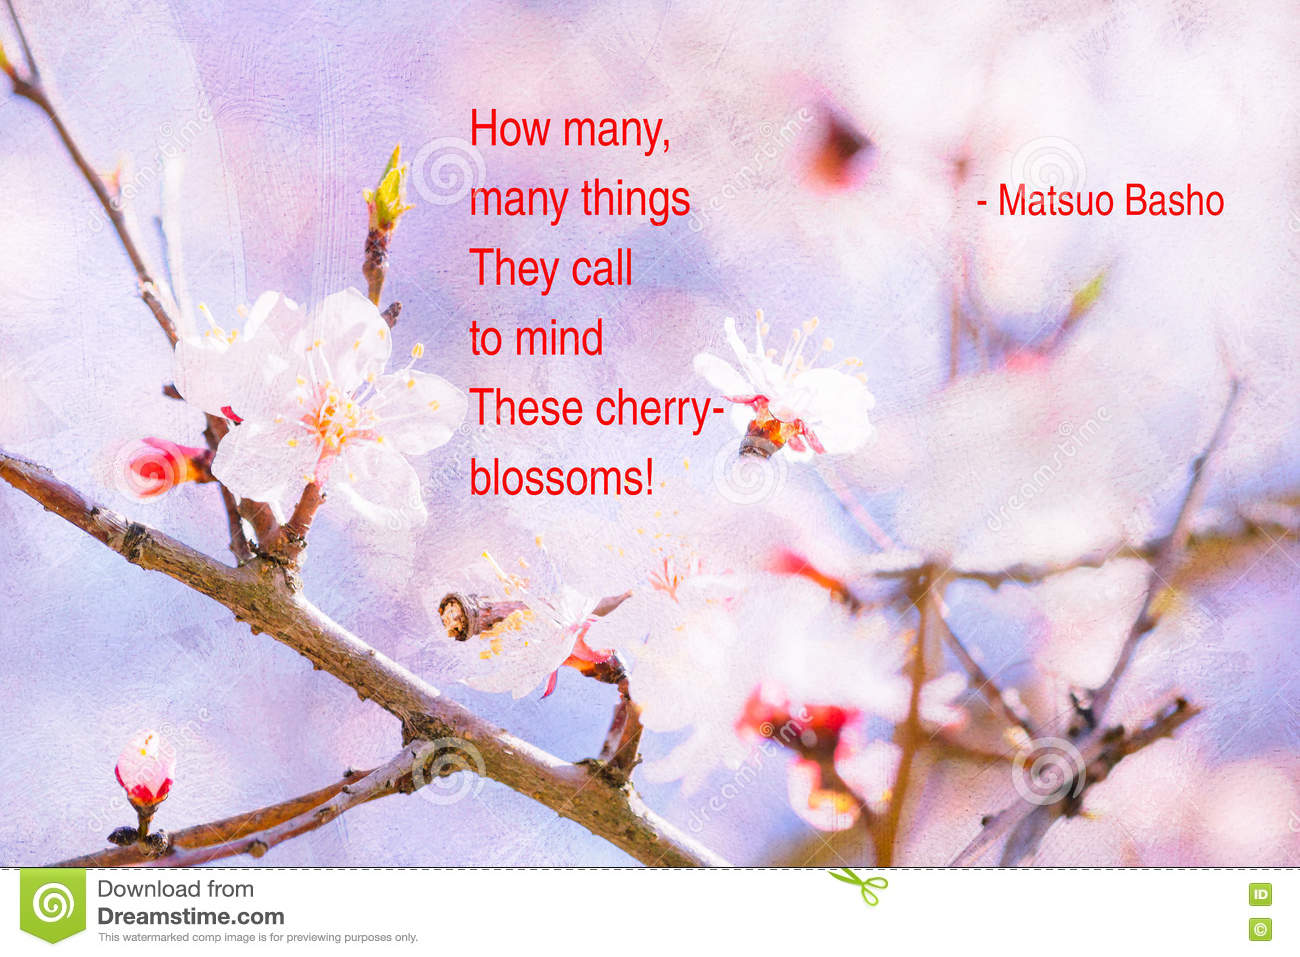 matsuo basho natures meaning We say that it is a haiku, but actually it is a hokku, the opening verse of an haikai, or a collaborative 'comic linked' poetry - therefore, even if it can stand alone, we need to remember that it is the beginning of a 'tale in verse' told by a number of poets (3,4 or more).